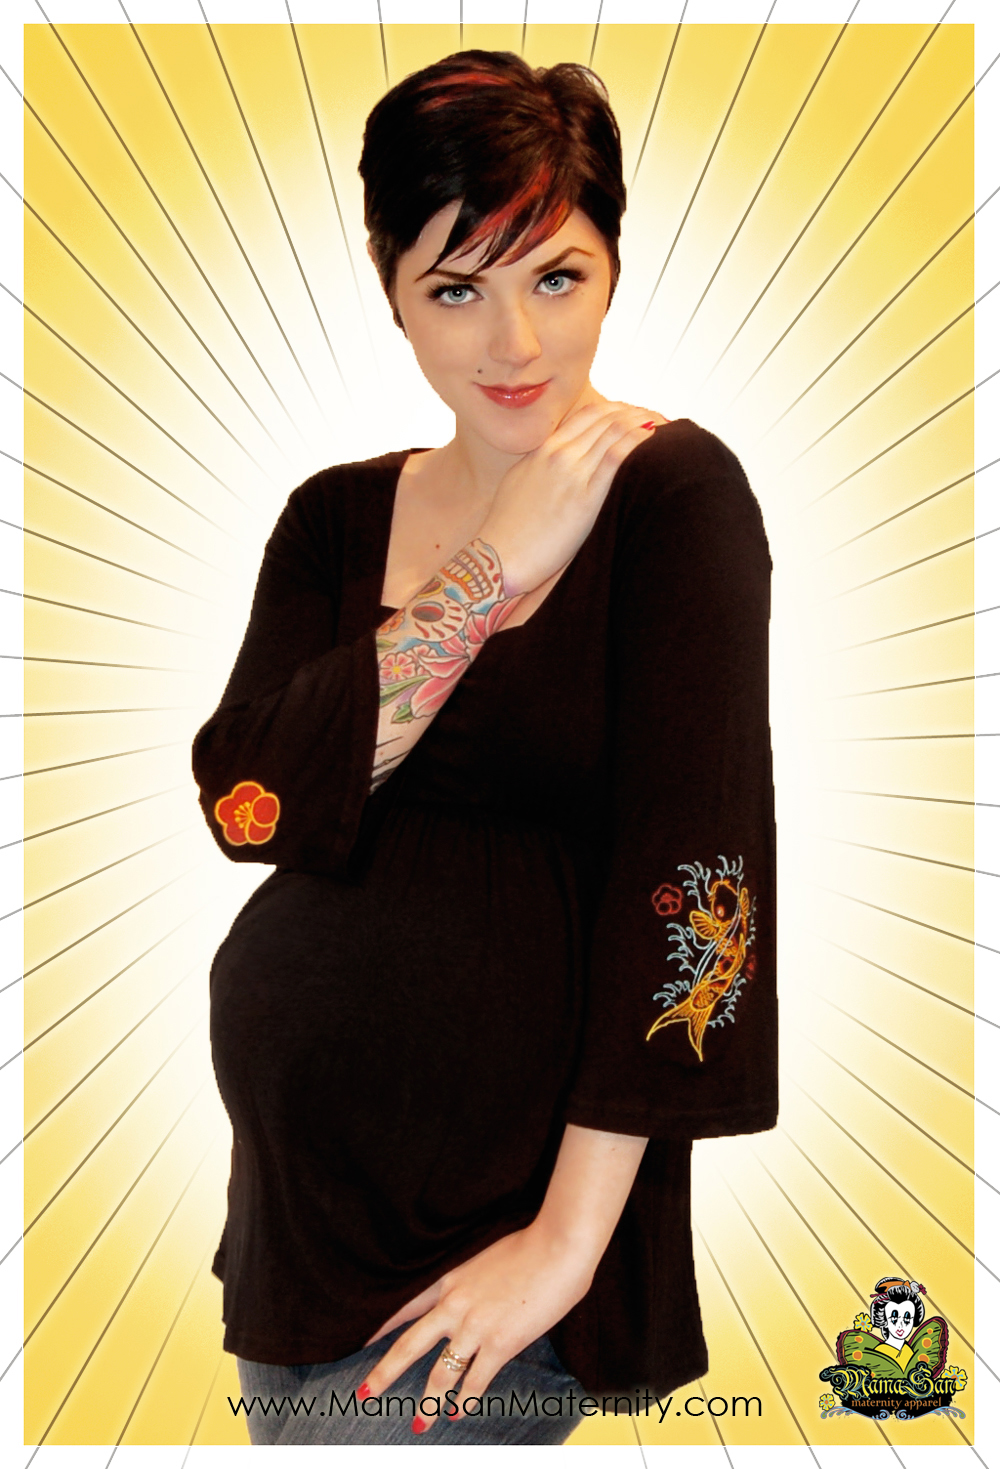 Punk maternity clothes and accessories to suit your edgy style. Skulls, stripes, tattoo prints, Lolita, goth and rockabilly maternity style can be found here. Rock maternity clothes for rocker chics and urban clothing styles for alternative moms.